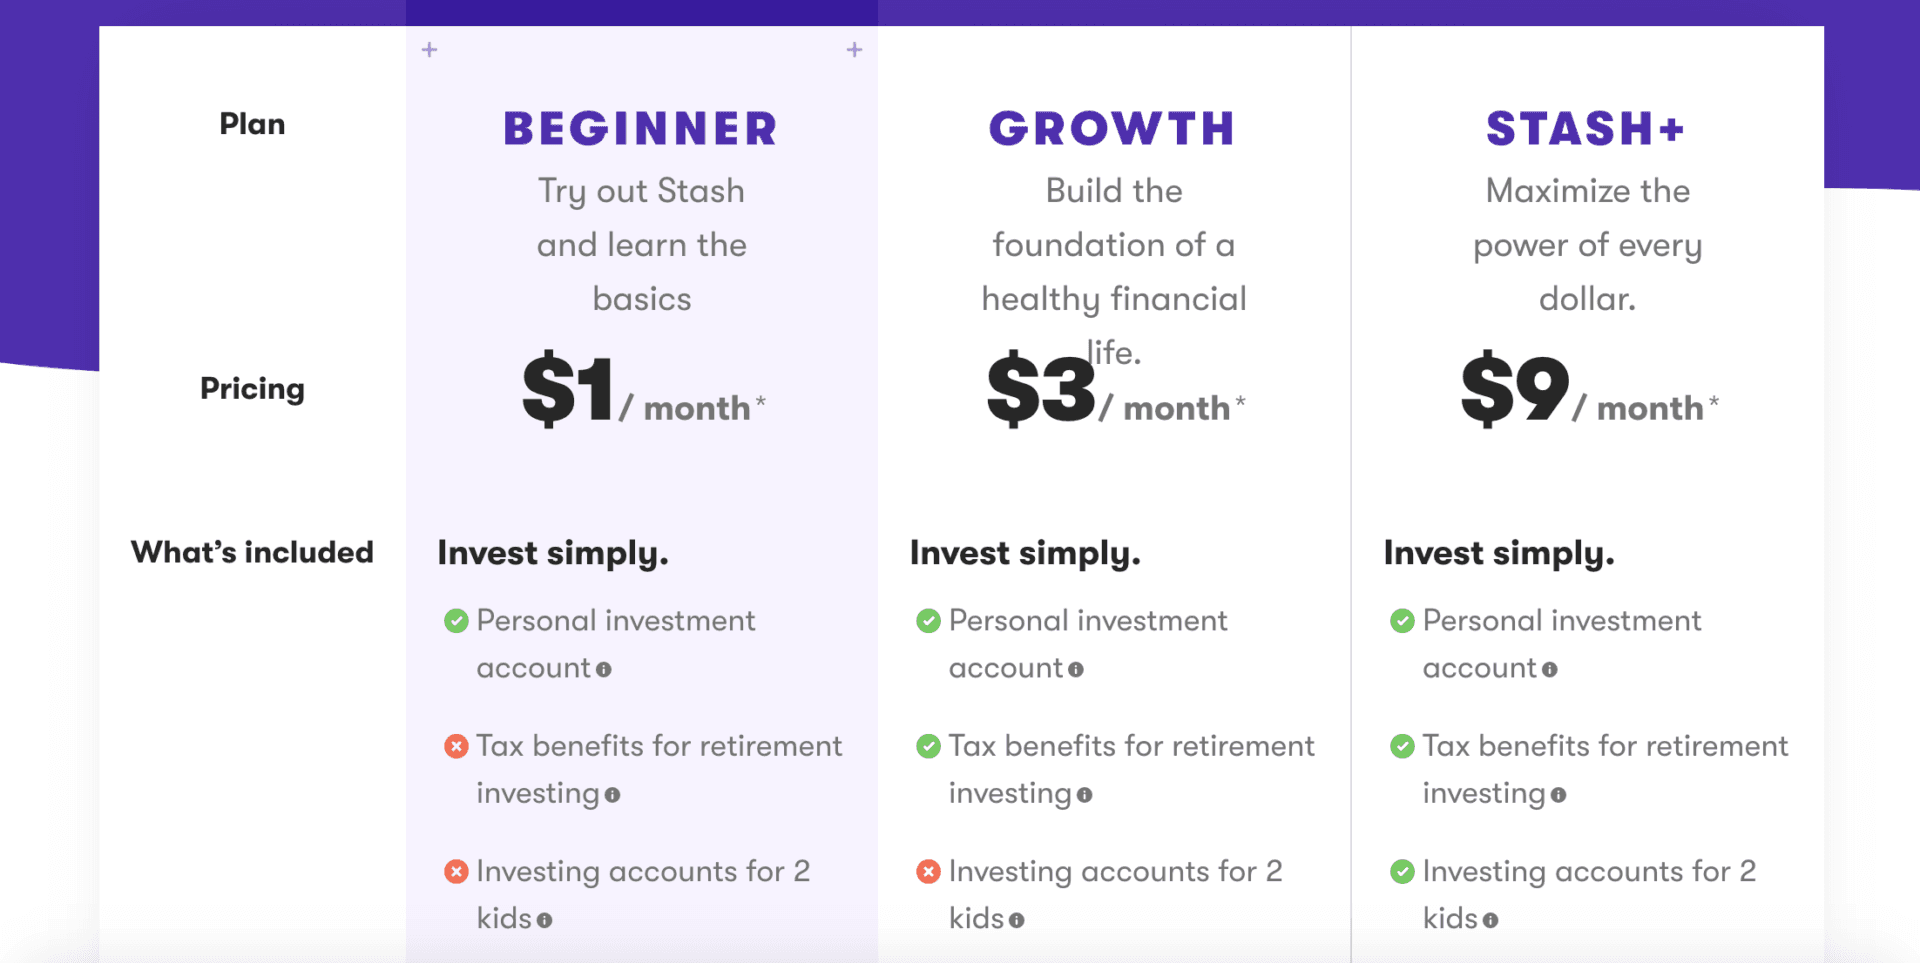 Screengrab of the Stash App investment plans - Learnbonds